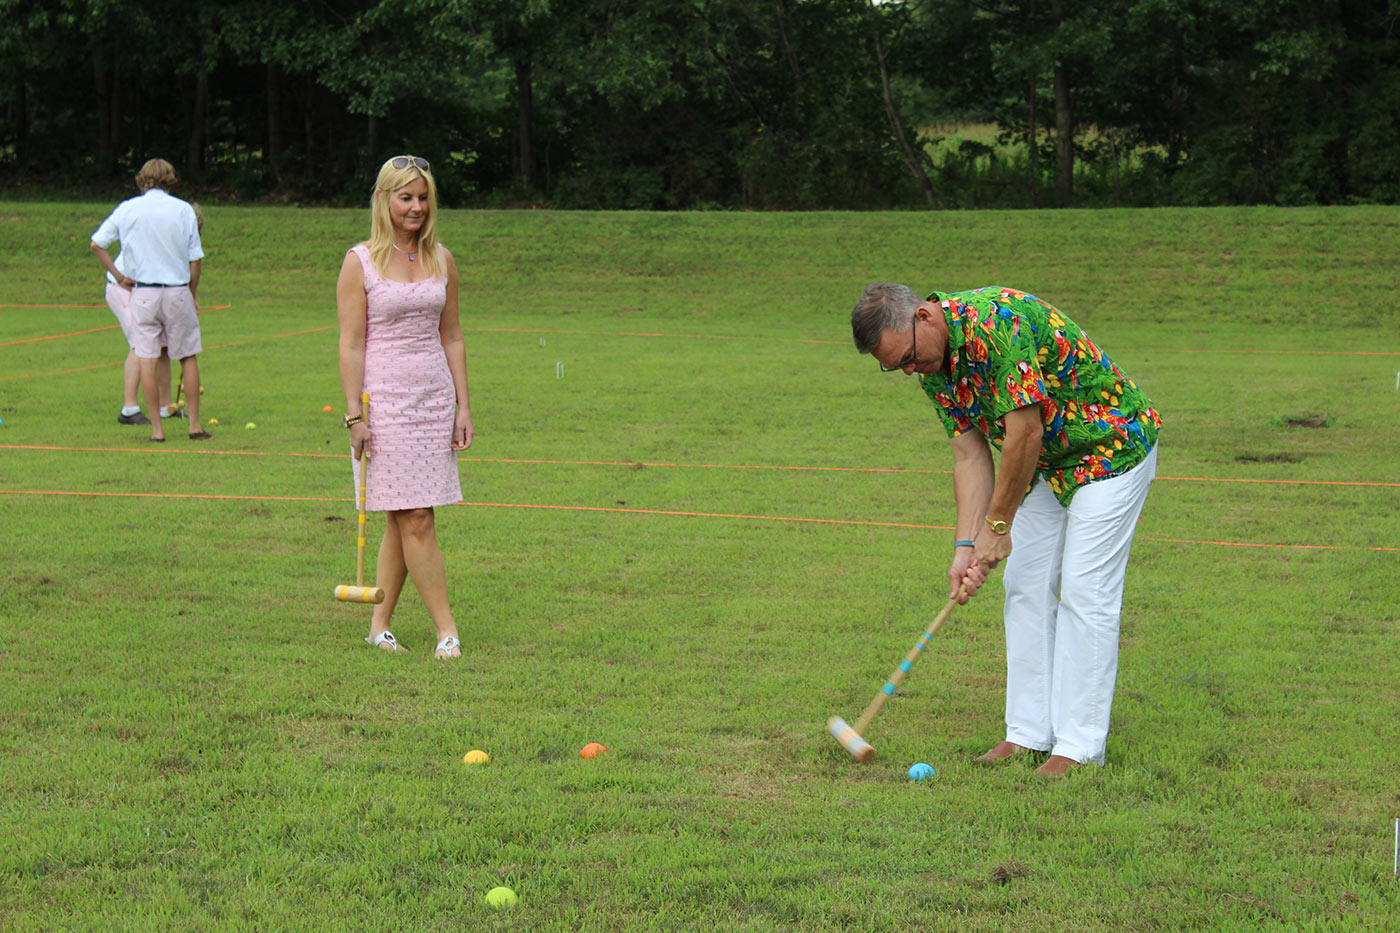 woman in pink dress watching partner hit ball